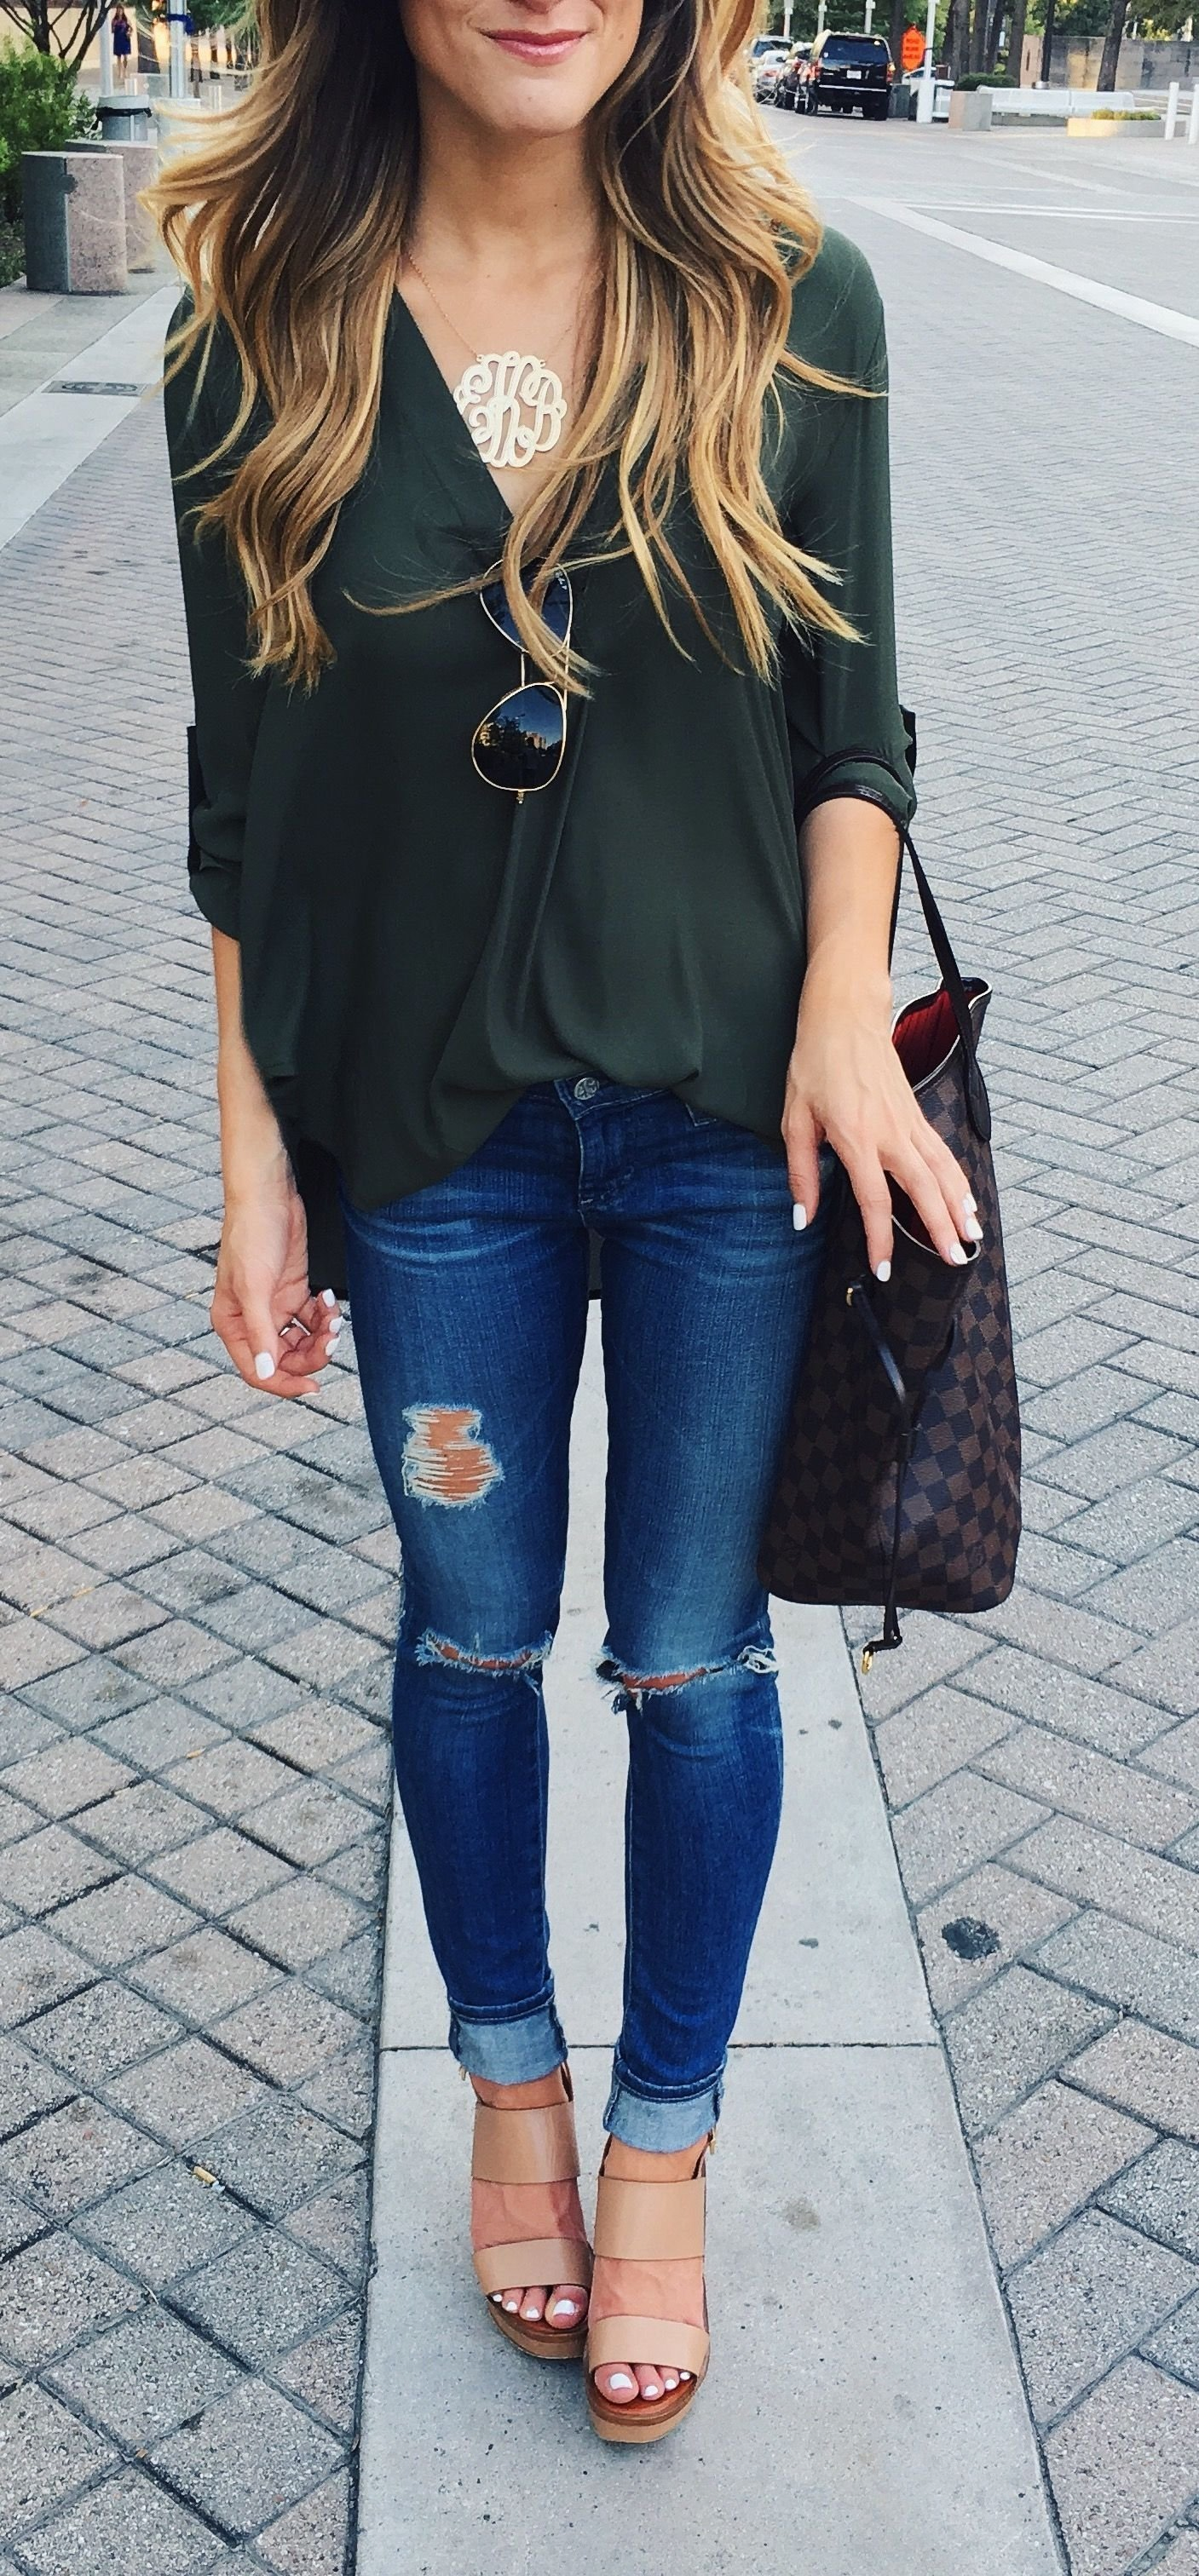 10 Cute Cute Outfit Ideas With Jeans 3 reasons to love it 3 ways to wear it simple fall outfits 2020